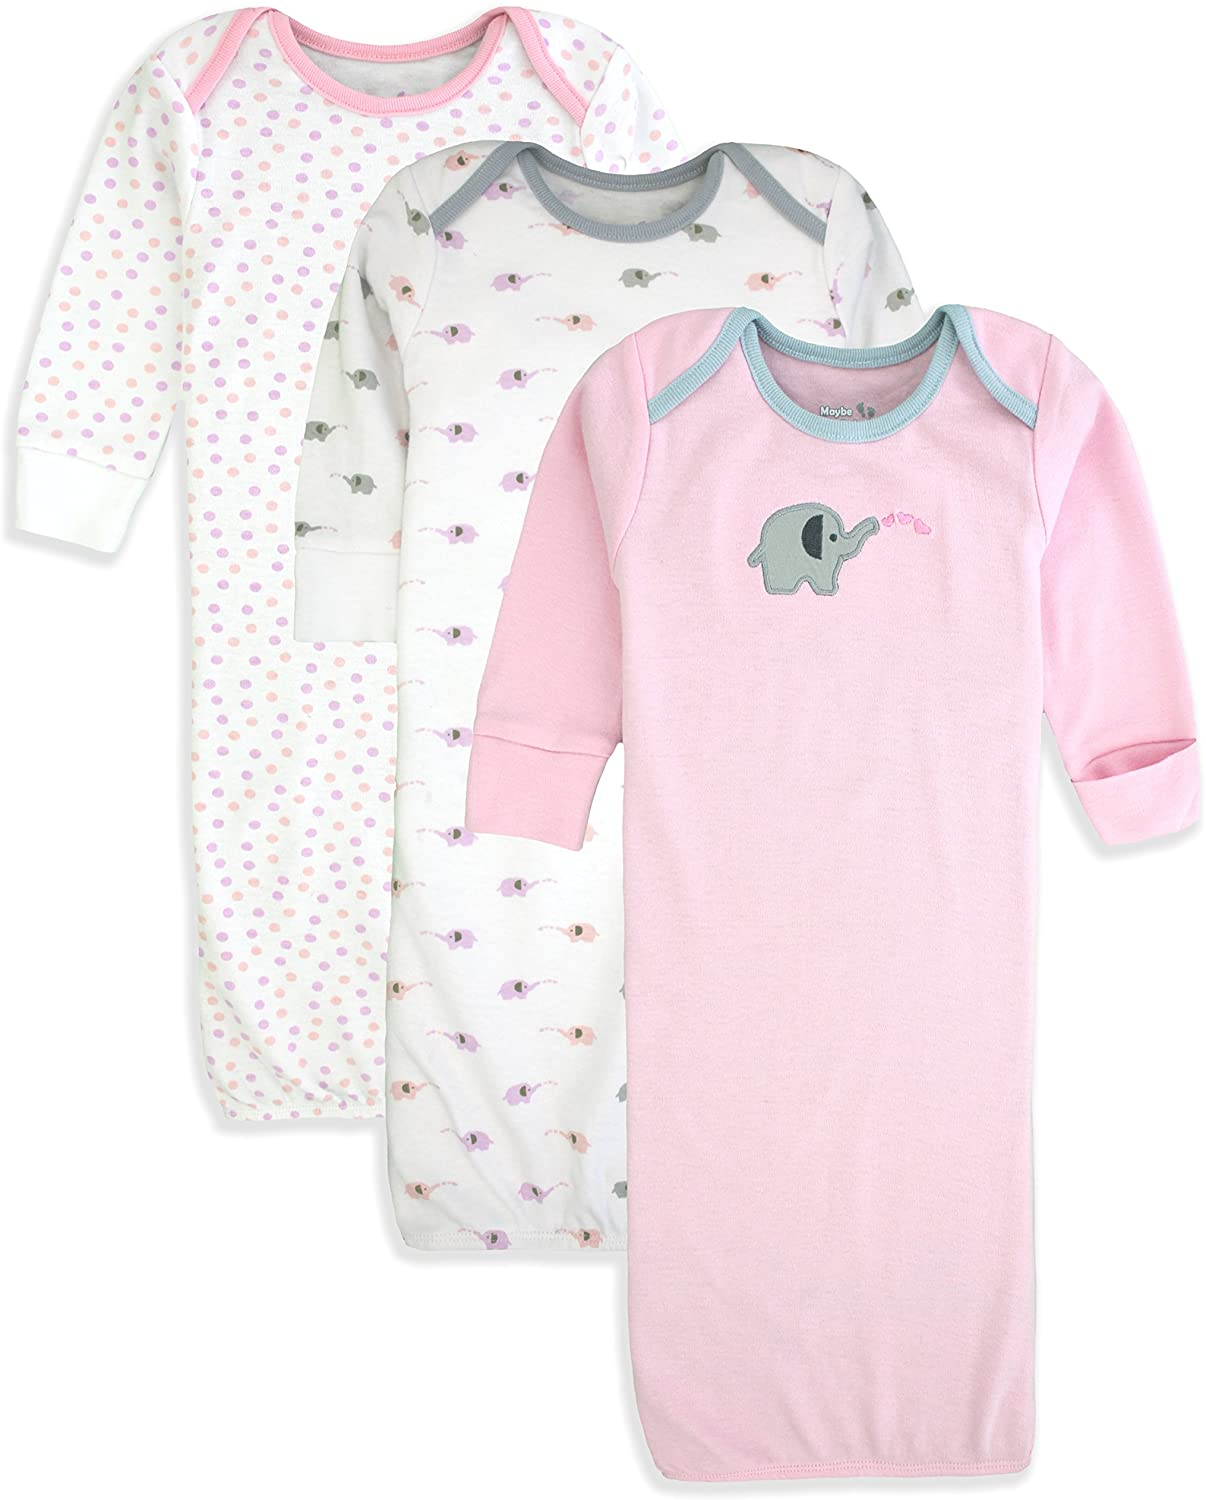 Maybe Baby Kids Infant Boys' and Girls' 3 Pack Set Cotton Baby Nightgowns w/Mitten Cuffs, 0-6 Months